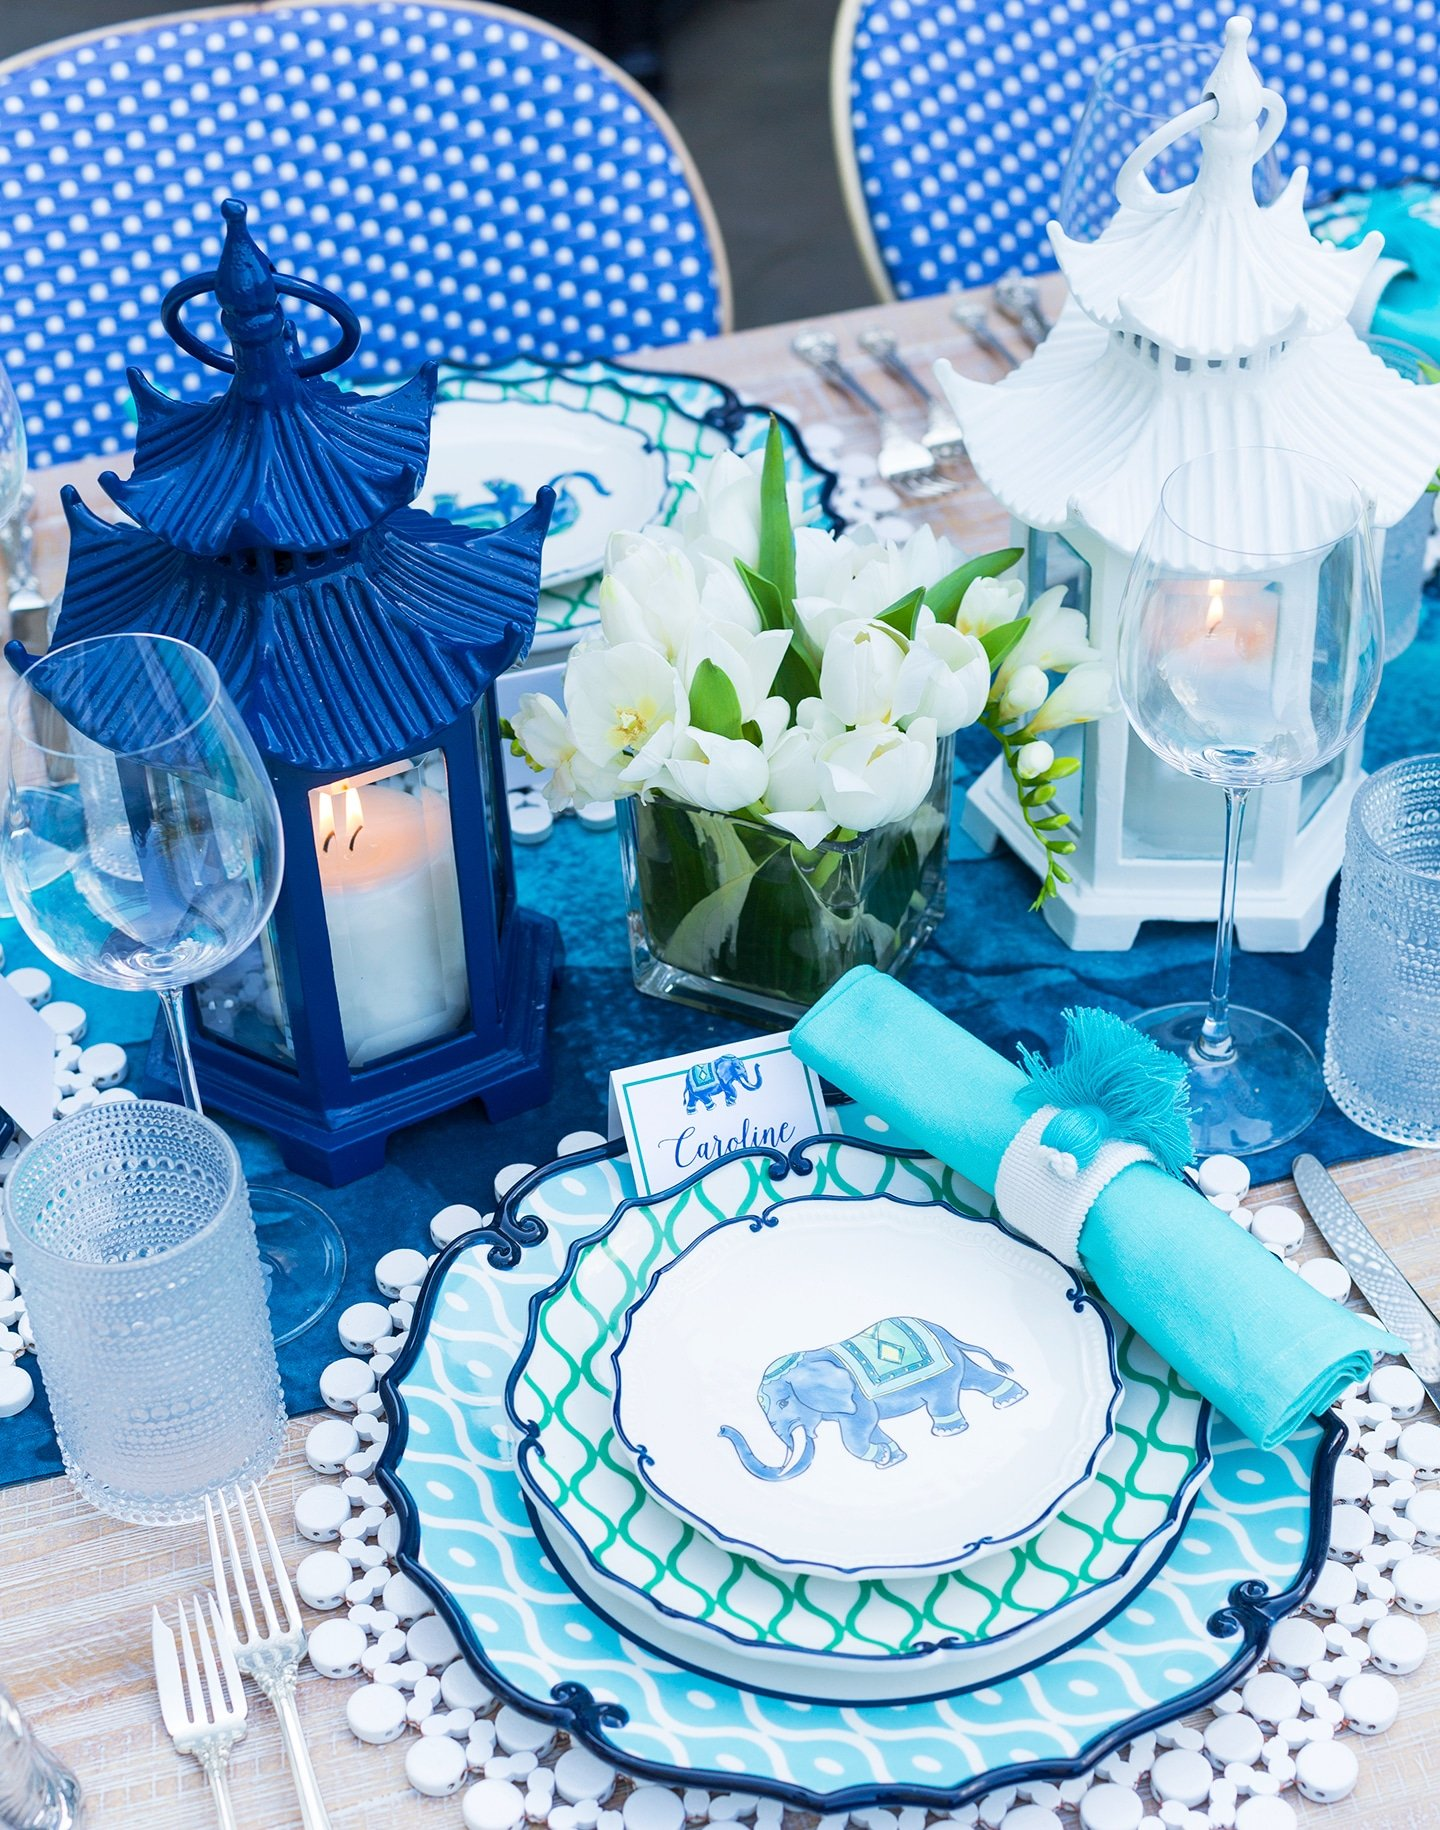 tips for hosting a stylish last minute backyard dinner party